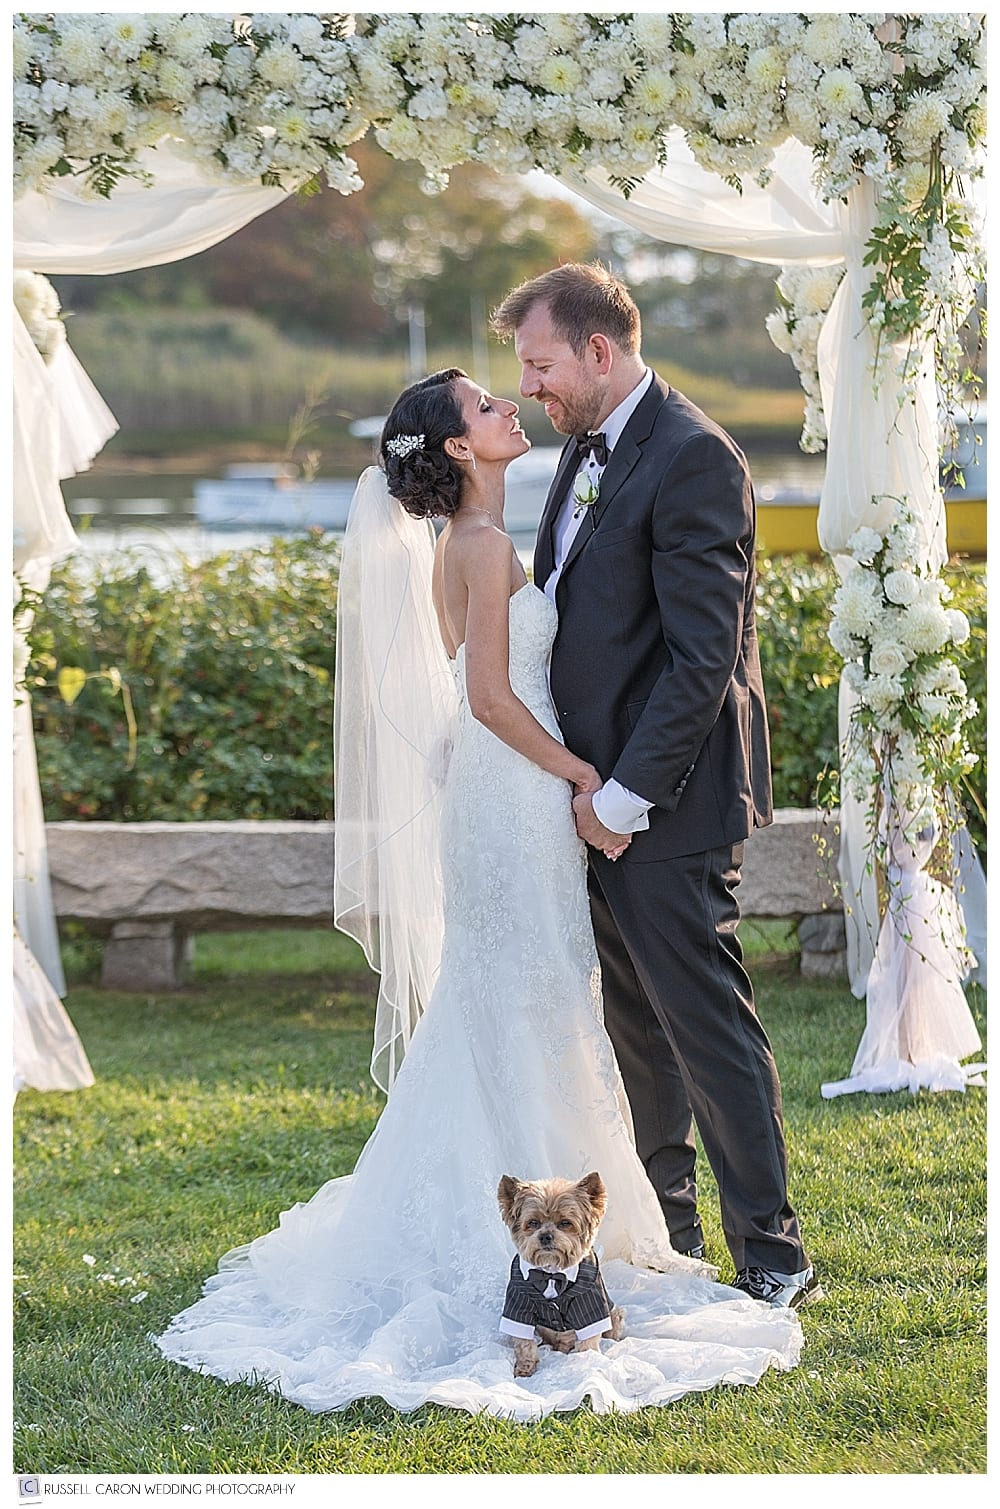 Charming wedding photo of bride and groom, with dog on bride's train.